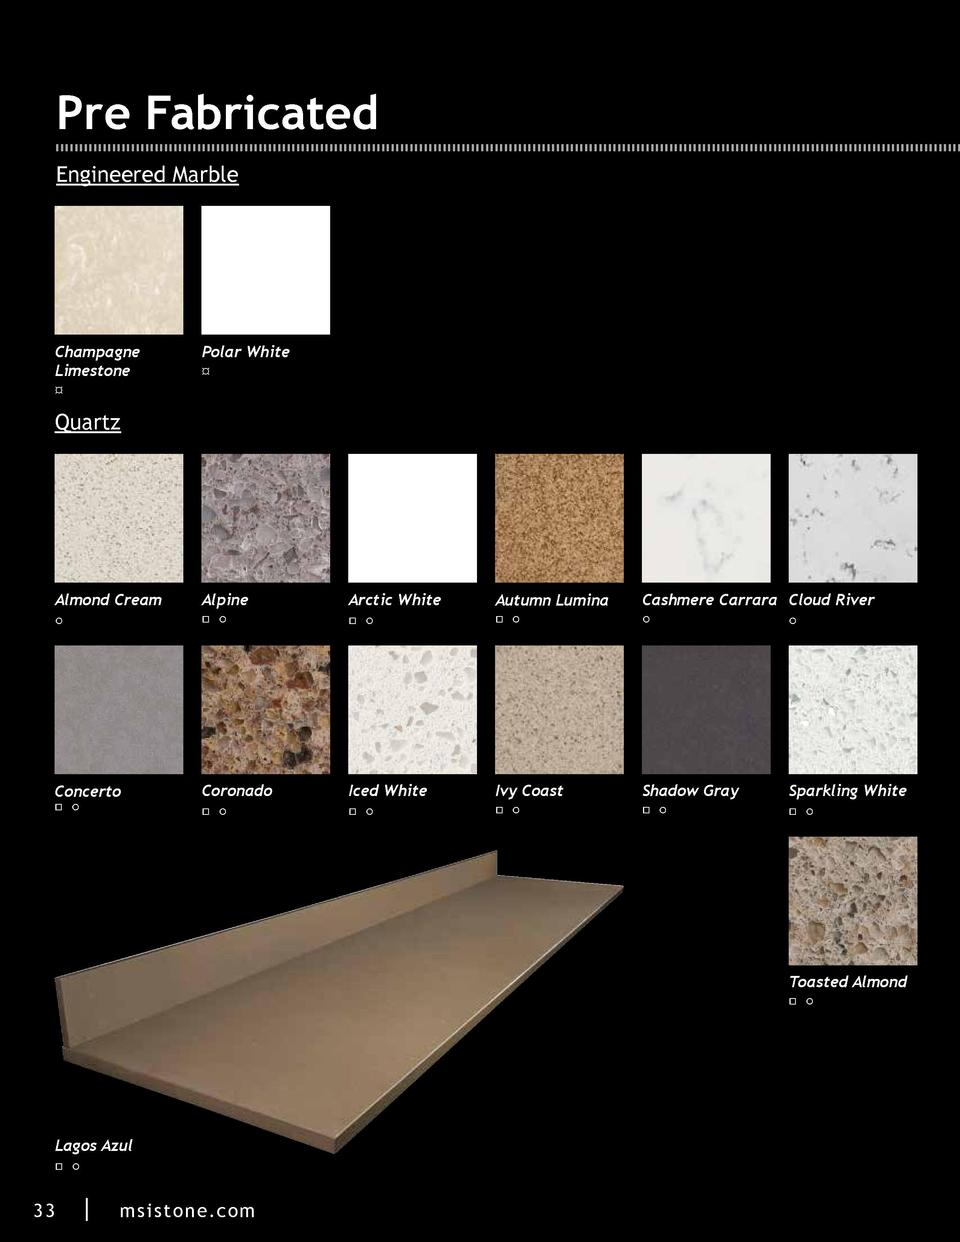 Pre Fabricated Engineered Marble  Champagne Limestone     Polar White     Quartz  Almond Cream  Alpine  Arctic White  Autu...